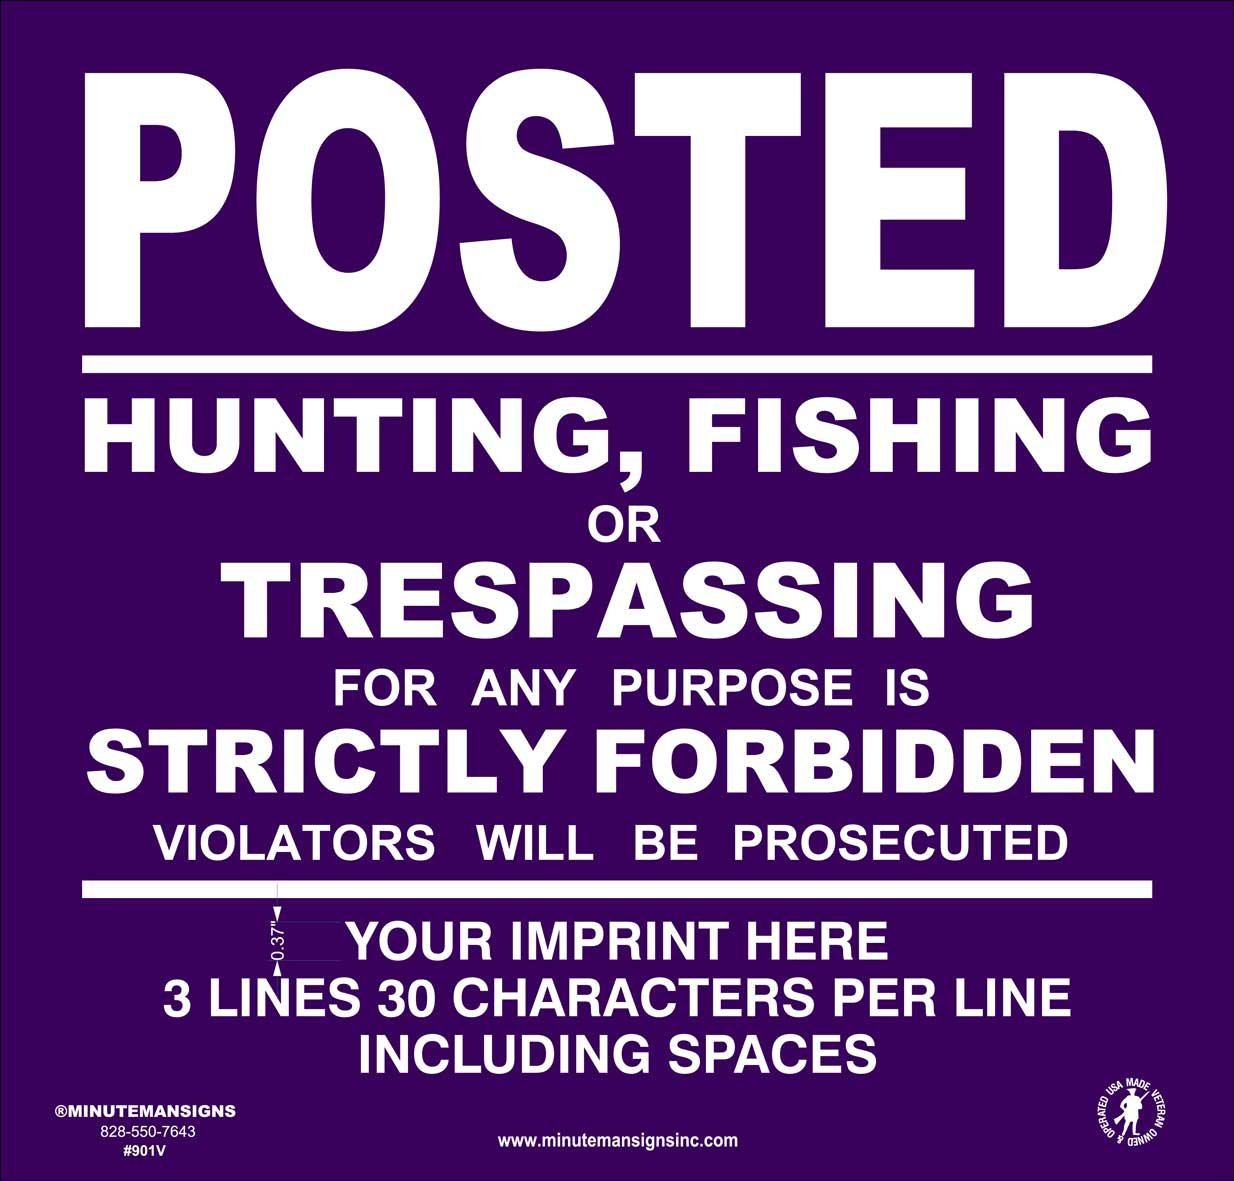 Heavy Gauge 13mil Vinyl Posted Signs with Your Custom Information (Purple)